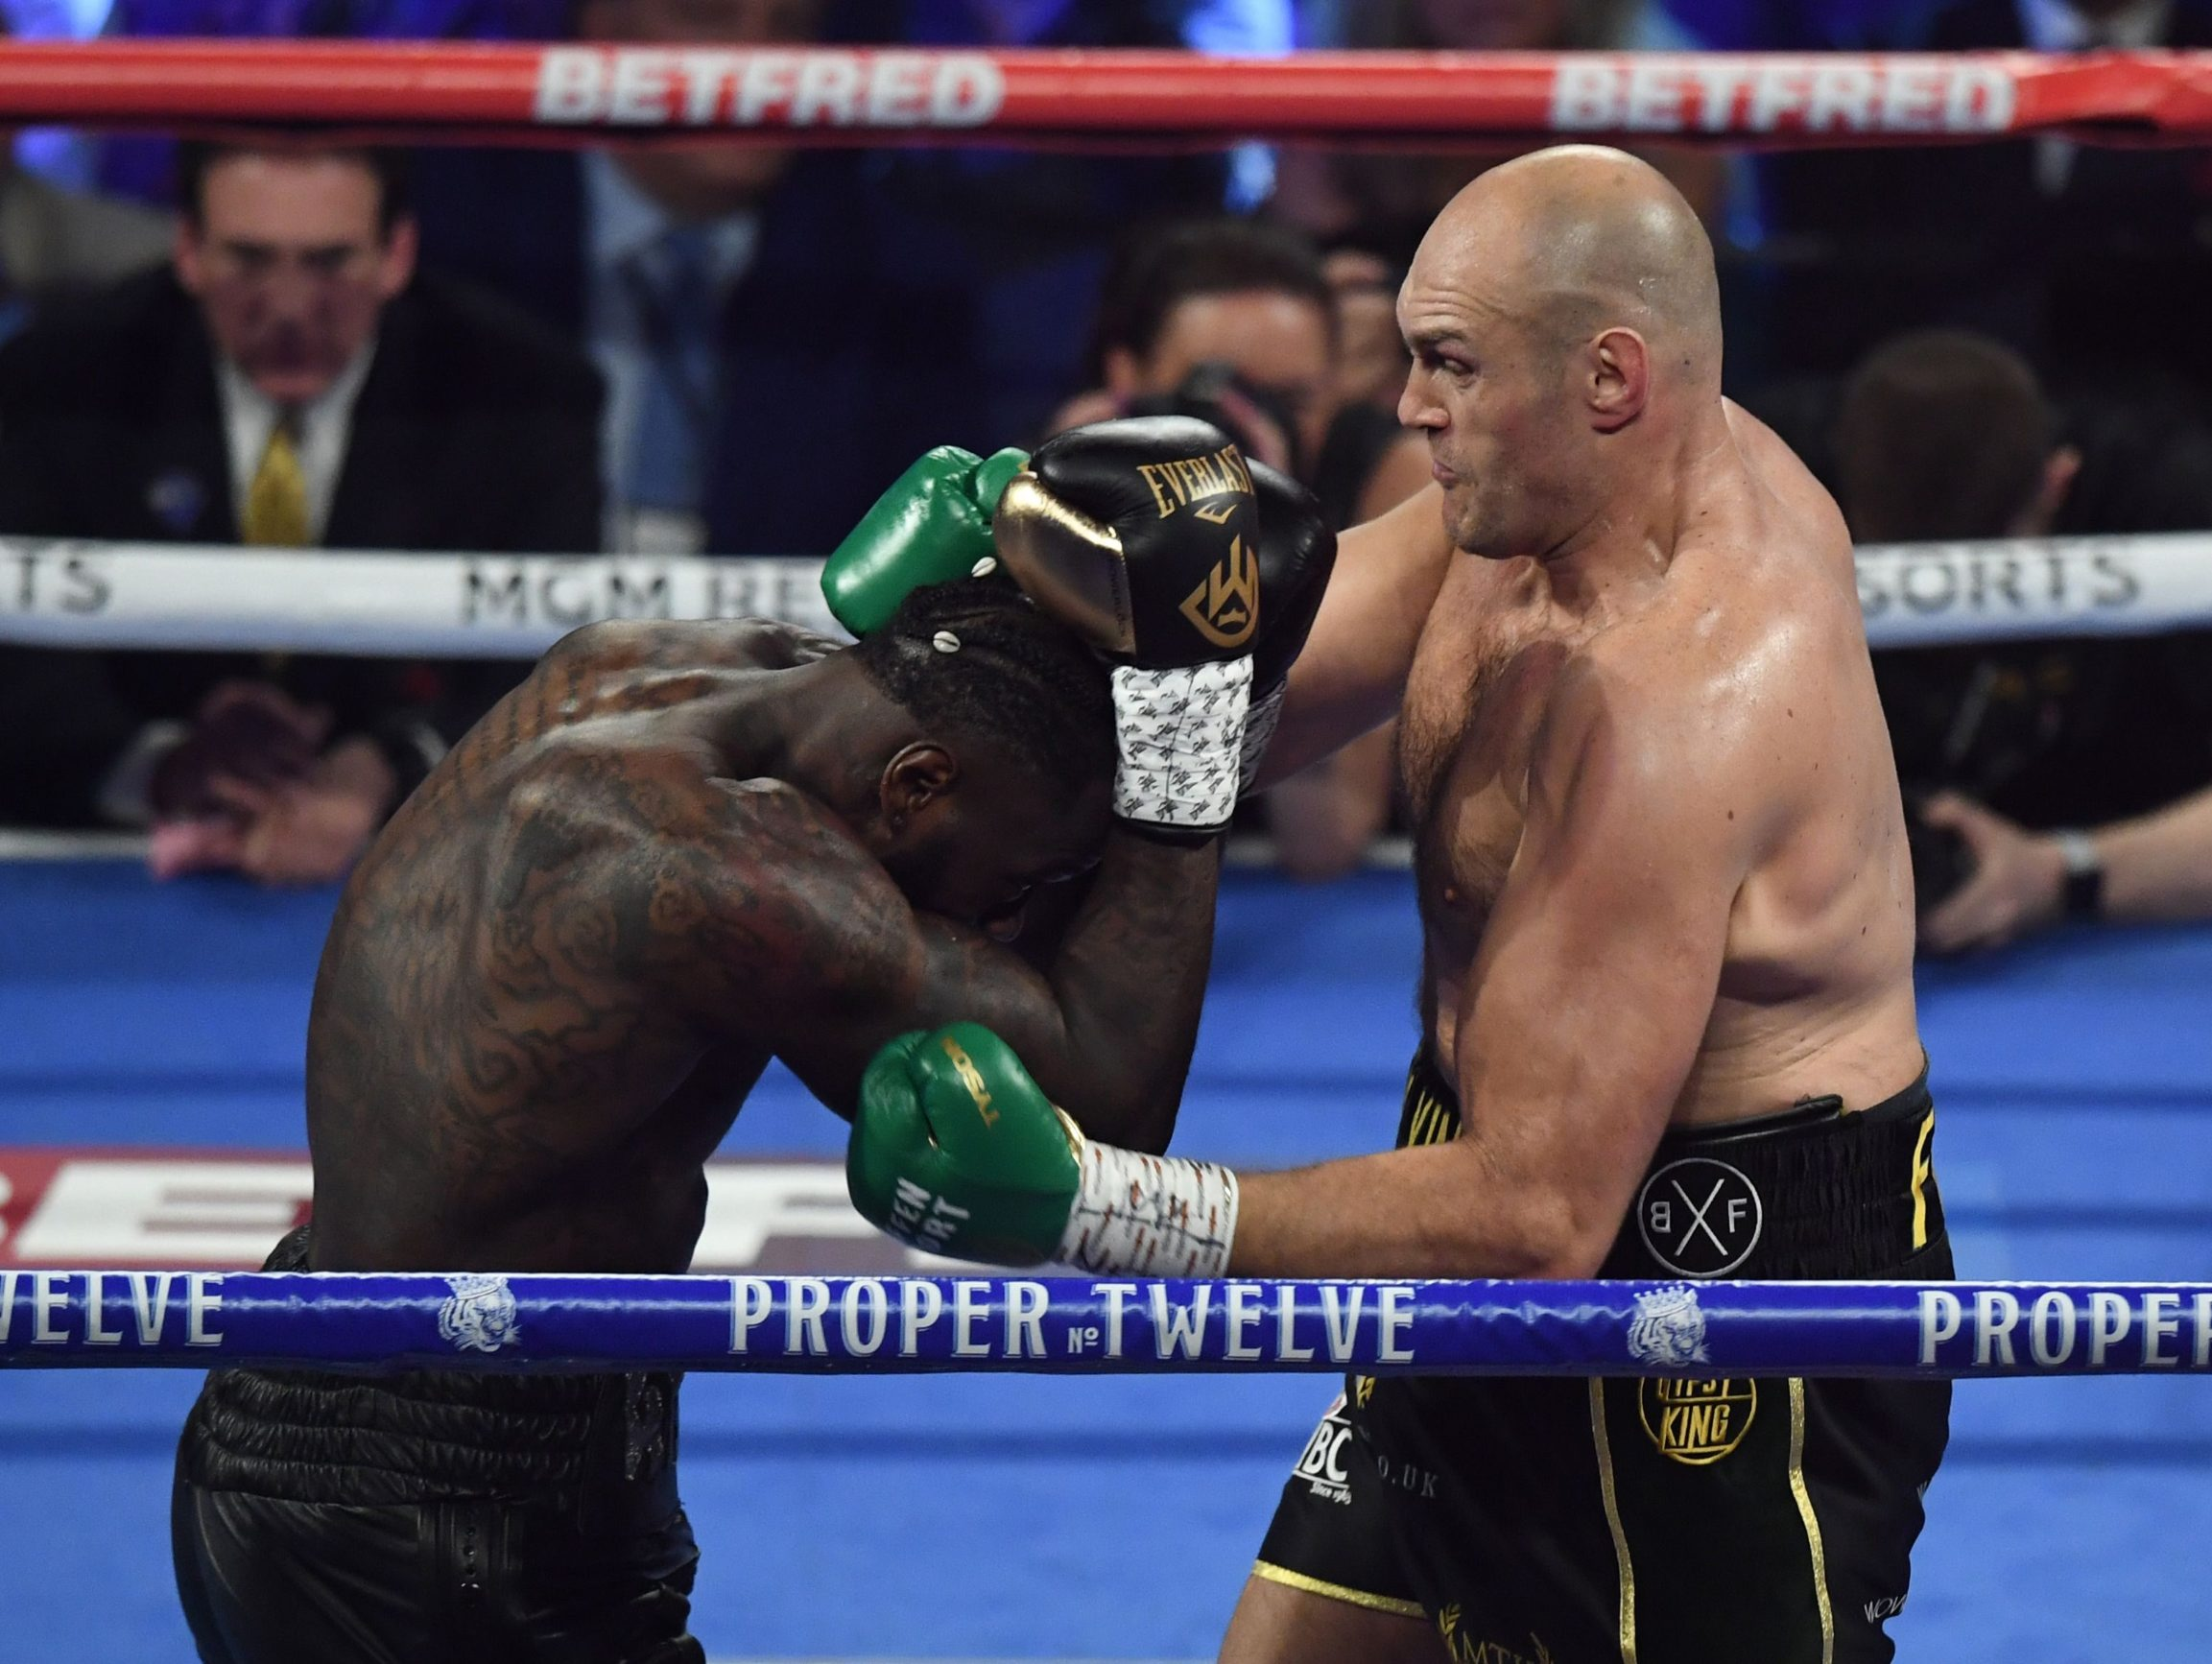 British boxer Tyson Fury (R) lands a punch on US boxer Deontay Wilder during their World Boxing Council (WBC) Heavyweight Championship Title boxing match at the MGM Grand Garden Arena in Las Vegas on February 22, 2020. (Photo by Mark RALSTON / AFP)